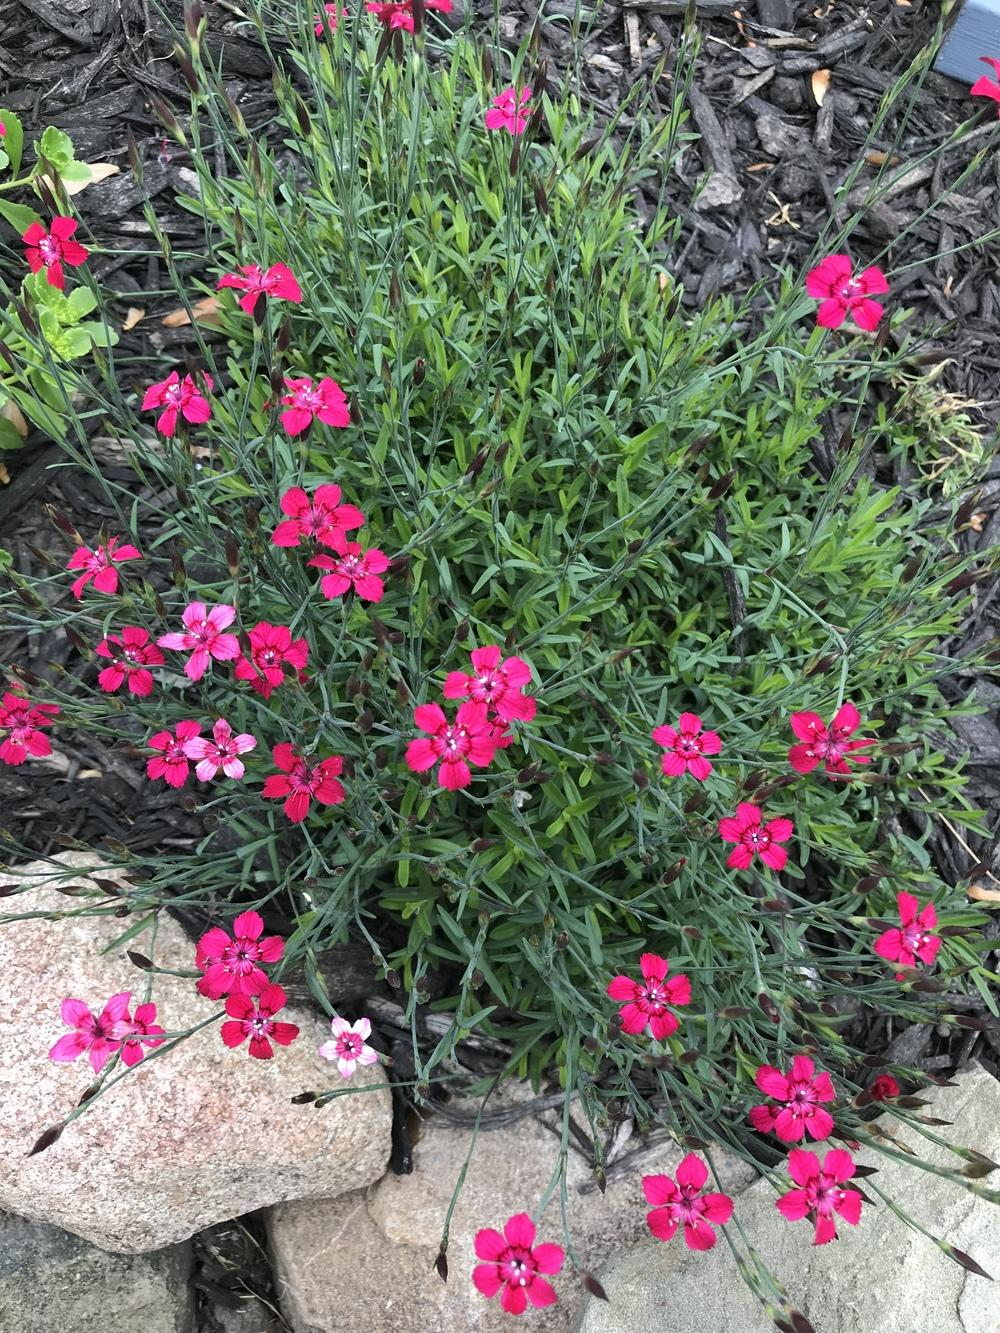 Photo of Dianthus uploaded by Michelezie